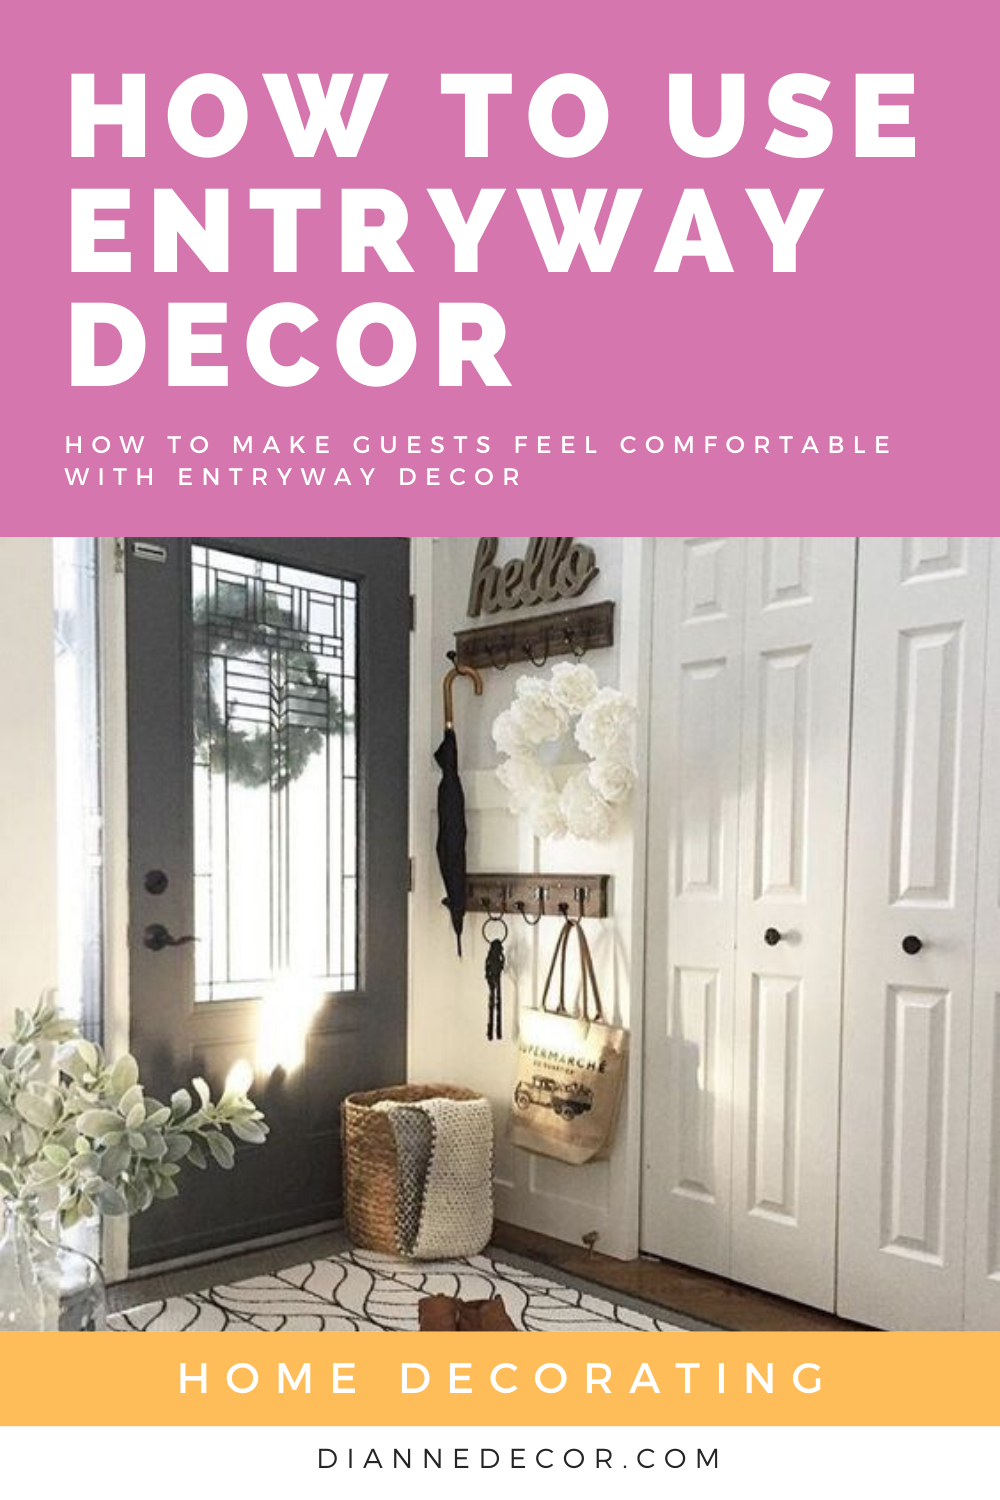 Welcoming guests to your home may seem like a no brainer, but there are a few details that can make a huge impact. Learn how to use entryway decor to make your guests feel welcome.    #entrywaydecor #homedecor #entrywayideas #homedecorating #roomideas #interiorstyling #interiordesign #mudroomdecor #mudroomideas #entryway